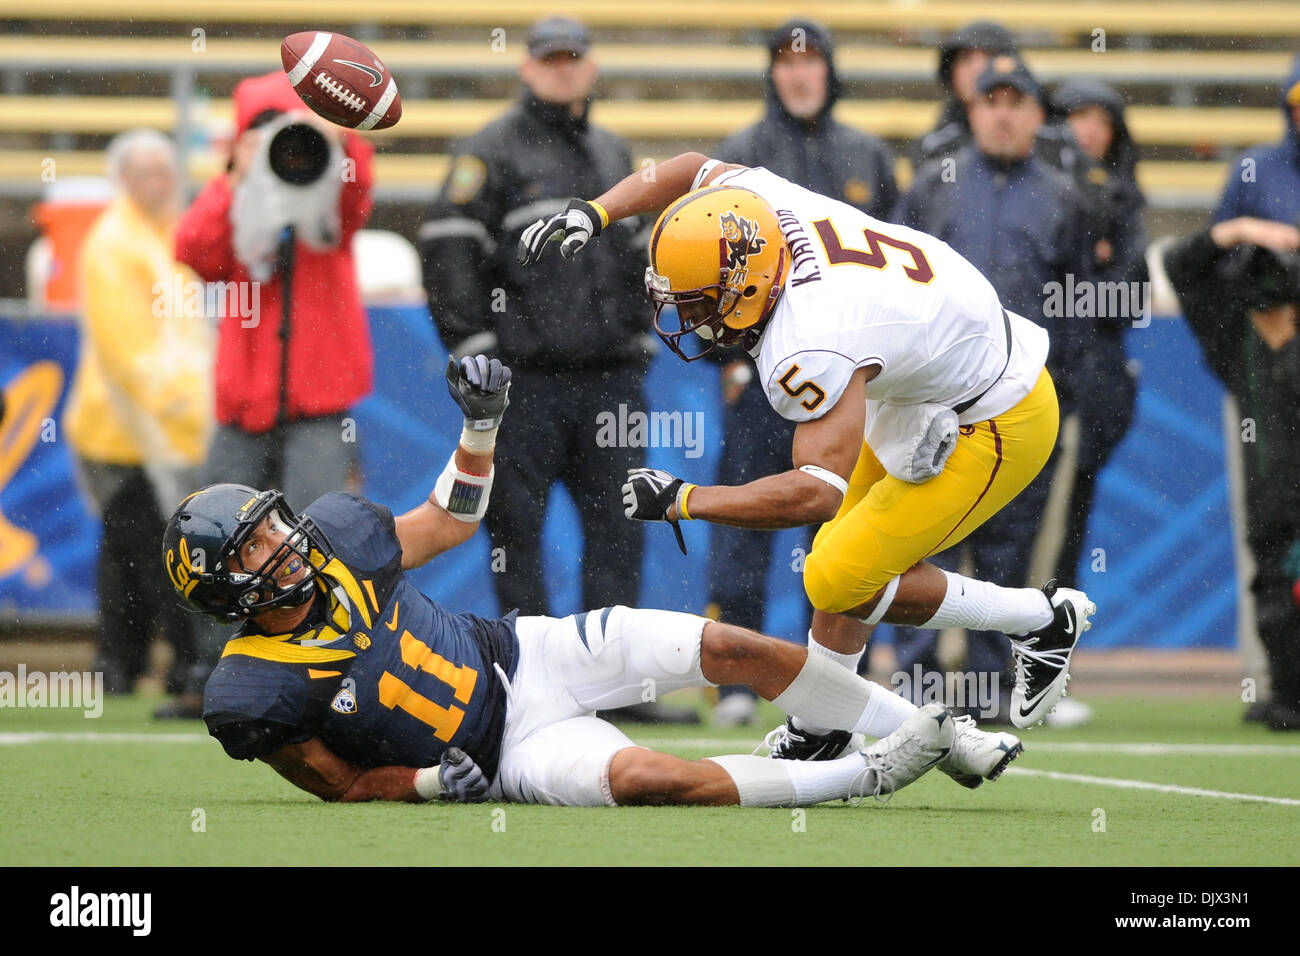 Oct. 23, 2010 - Berkeley, California, United States of America - California Golden Bears cornerback Sean Cattouse (11) watches as a deflection floats harmlessly by Arizona State Sun Devils wide receiver Kerry Taylor (5) during the NCAA game between the California Golden Bears and the Arizona State Sun Devils at Memorial Stadium.  California took the Pac-10 contest 50-17. (Credit Im - Stock Image